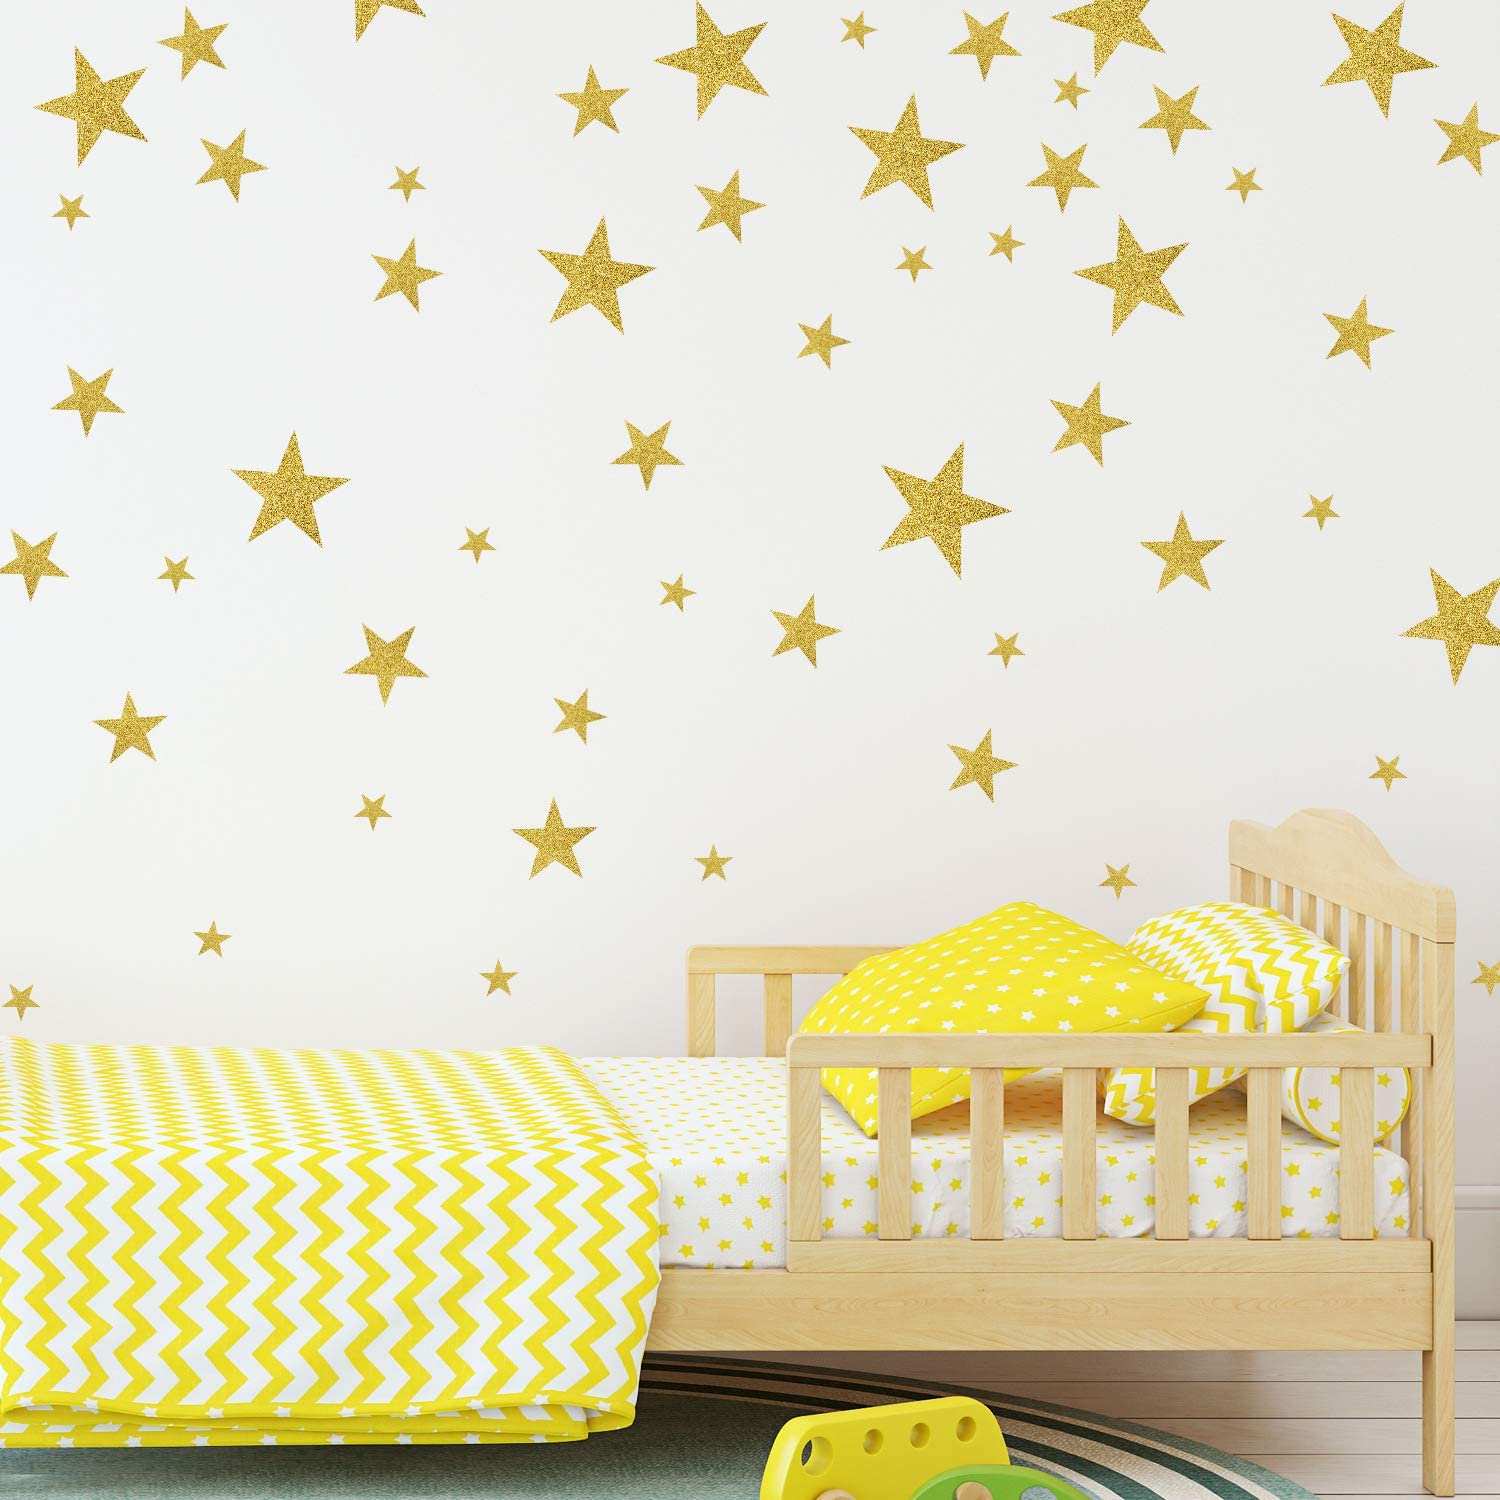 Home Furniture Diy Wall Decals Stickers 54 Stars And Moon Vinyl Bedroom Wall Decals Stickers Baby Kids Dorm Room Nursery Bortexgroup Com